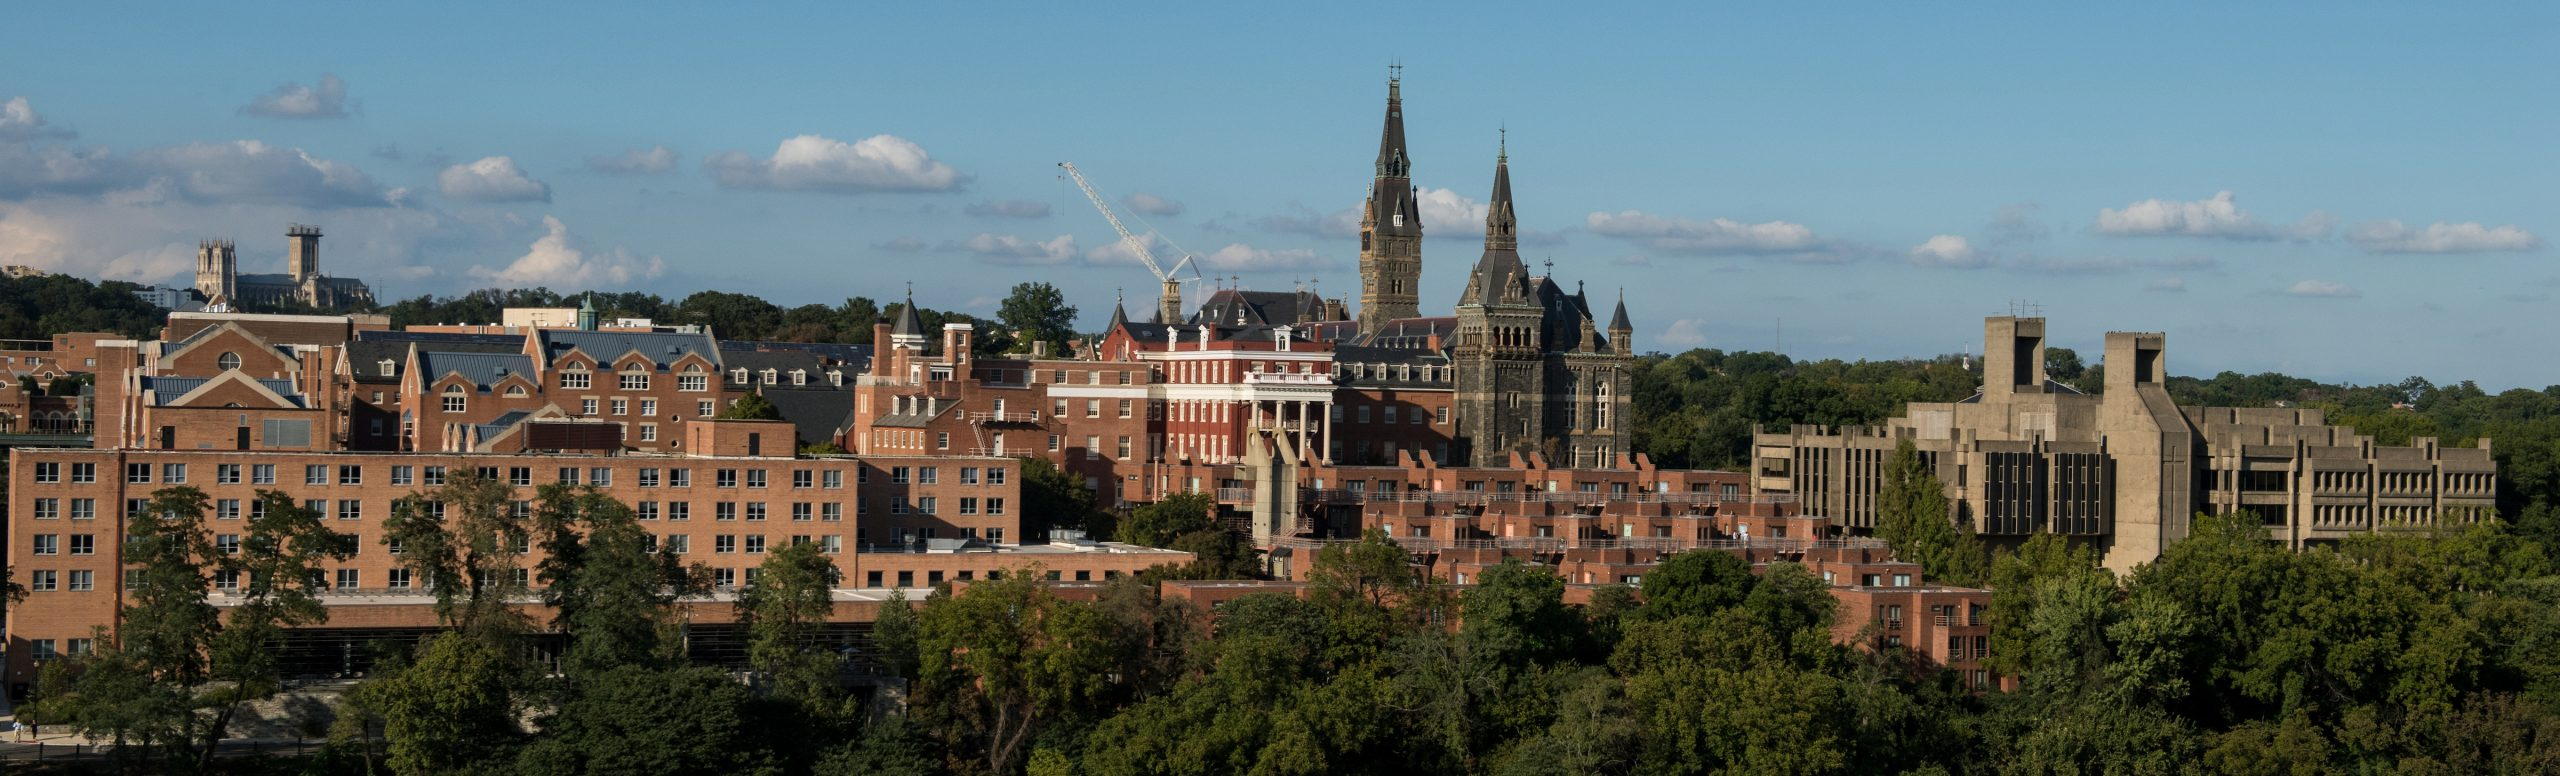 Long distance photo of the Georgetown University campus